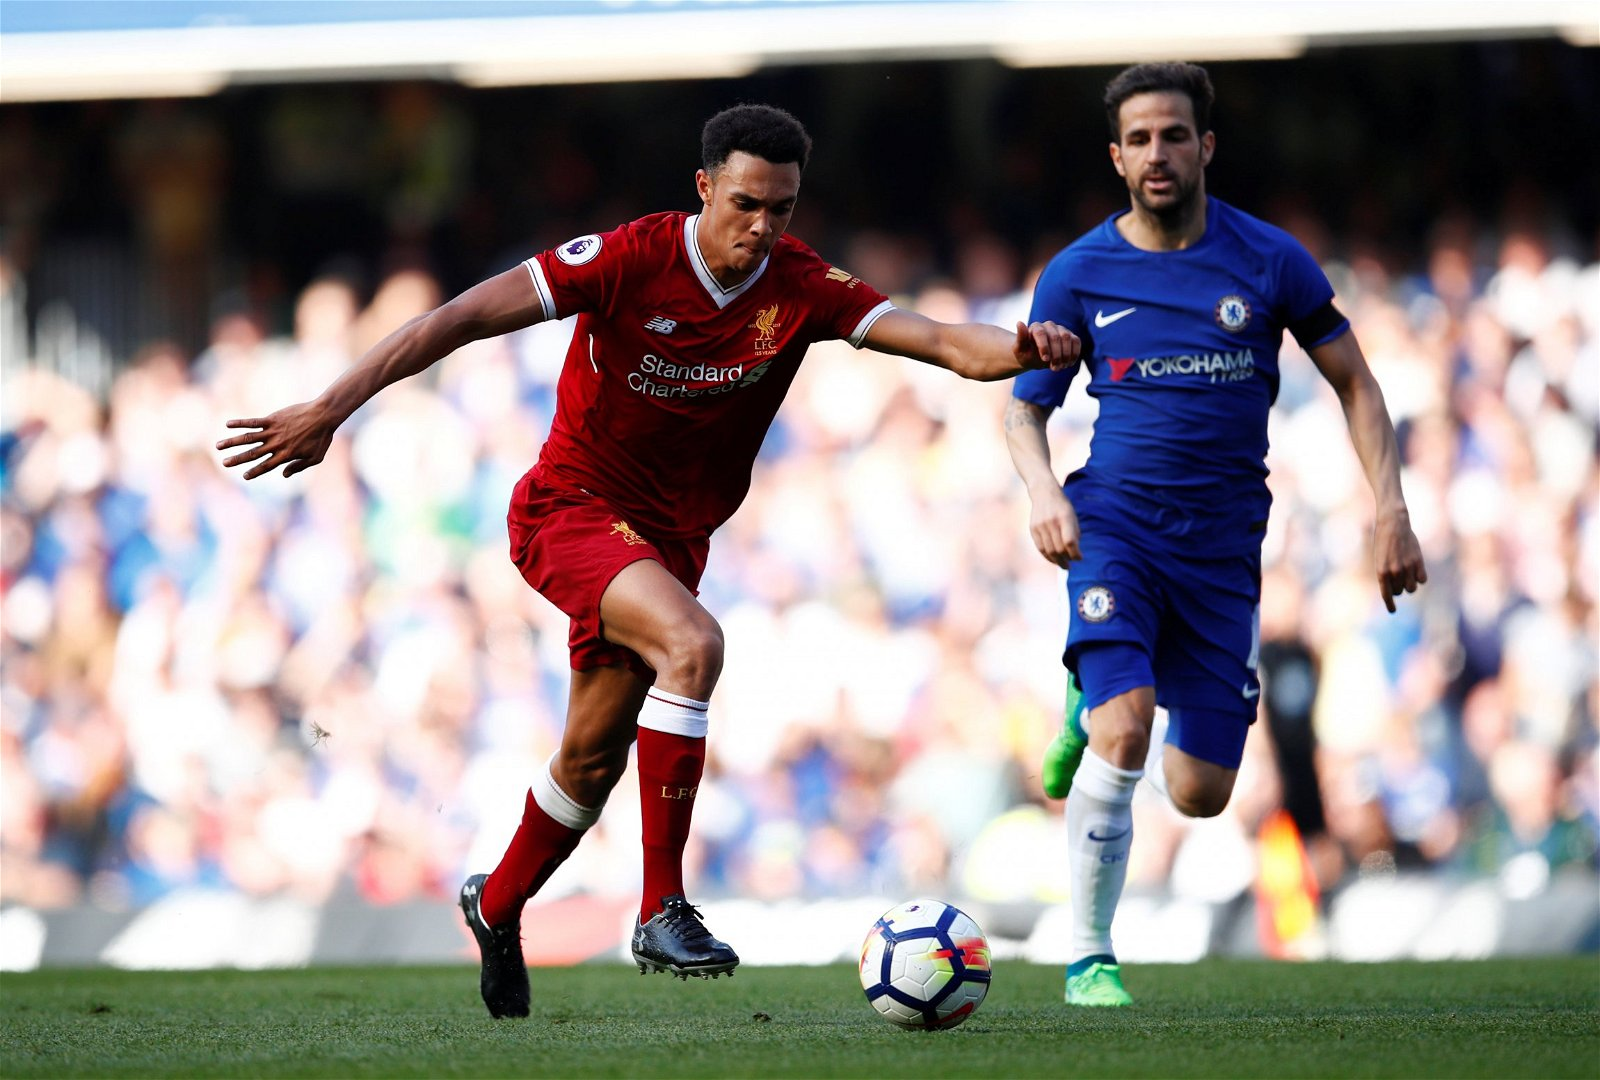 Trent Alexander-Arnold shapes up to shoot